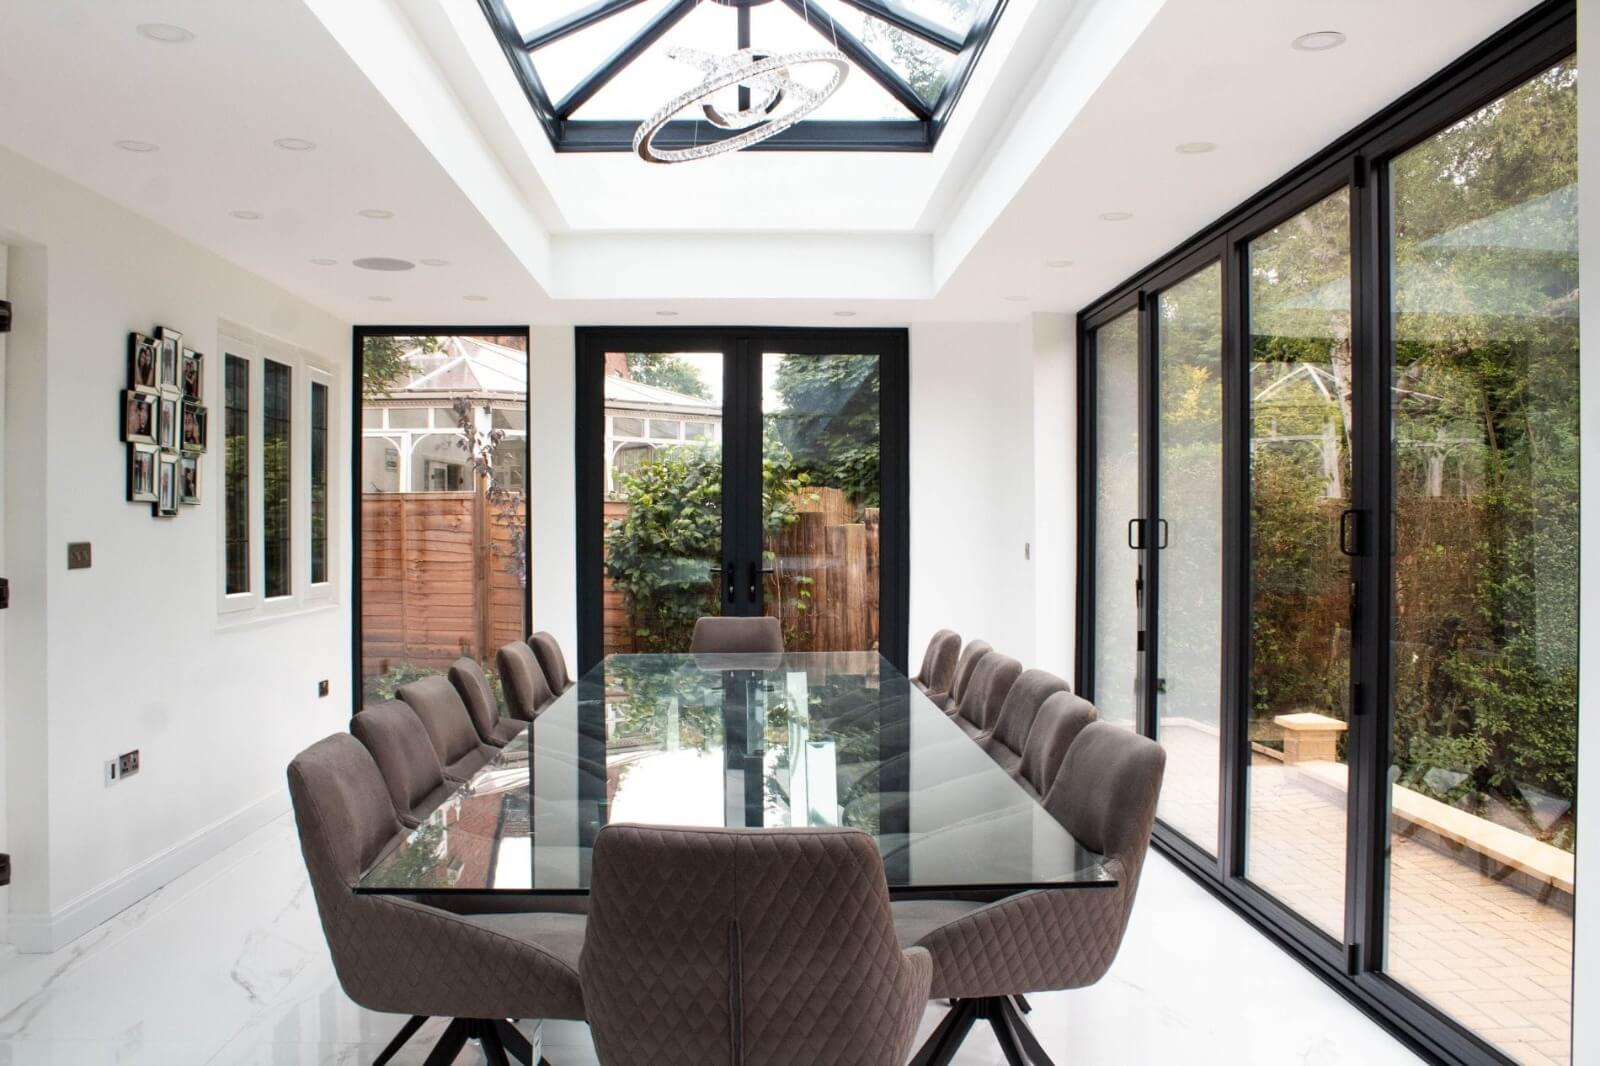 Do You Need Building Regulations Approval For A Conservatory?